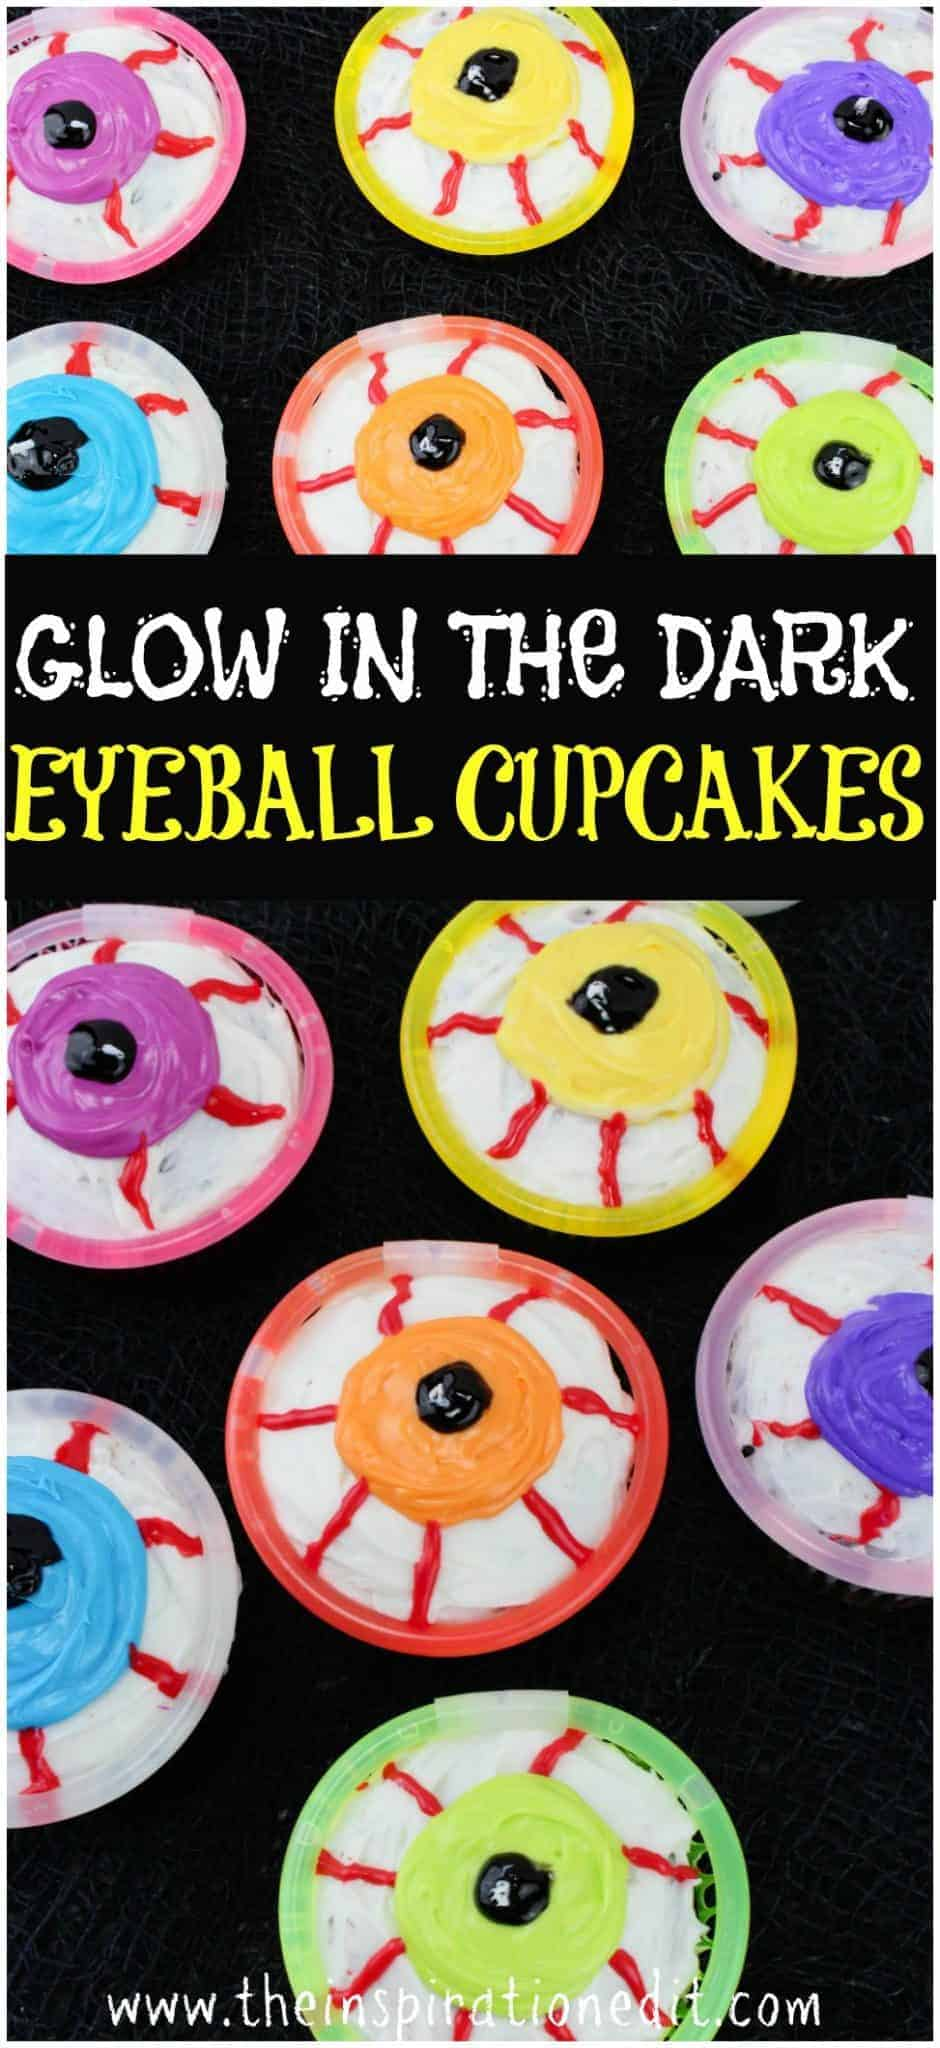 GLOW IN THE DARK EYEBALL HALLOWEEN CUPCAKES